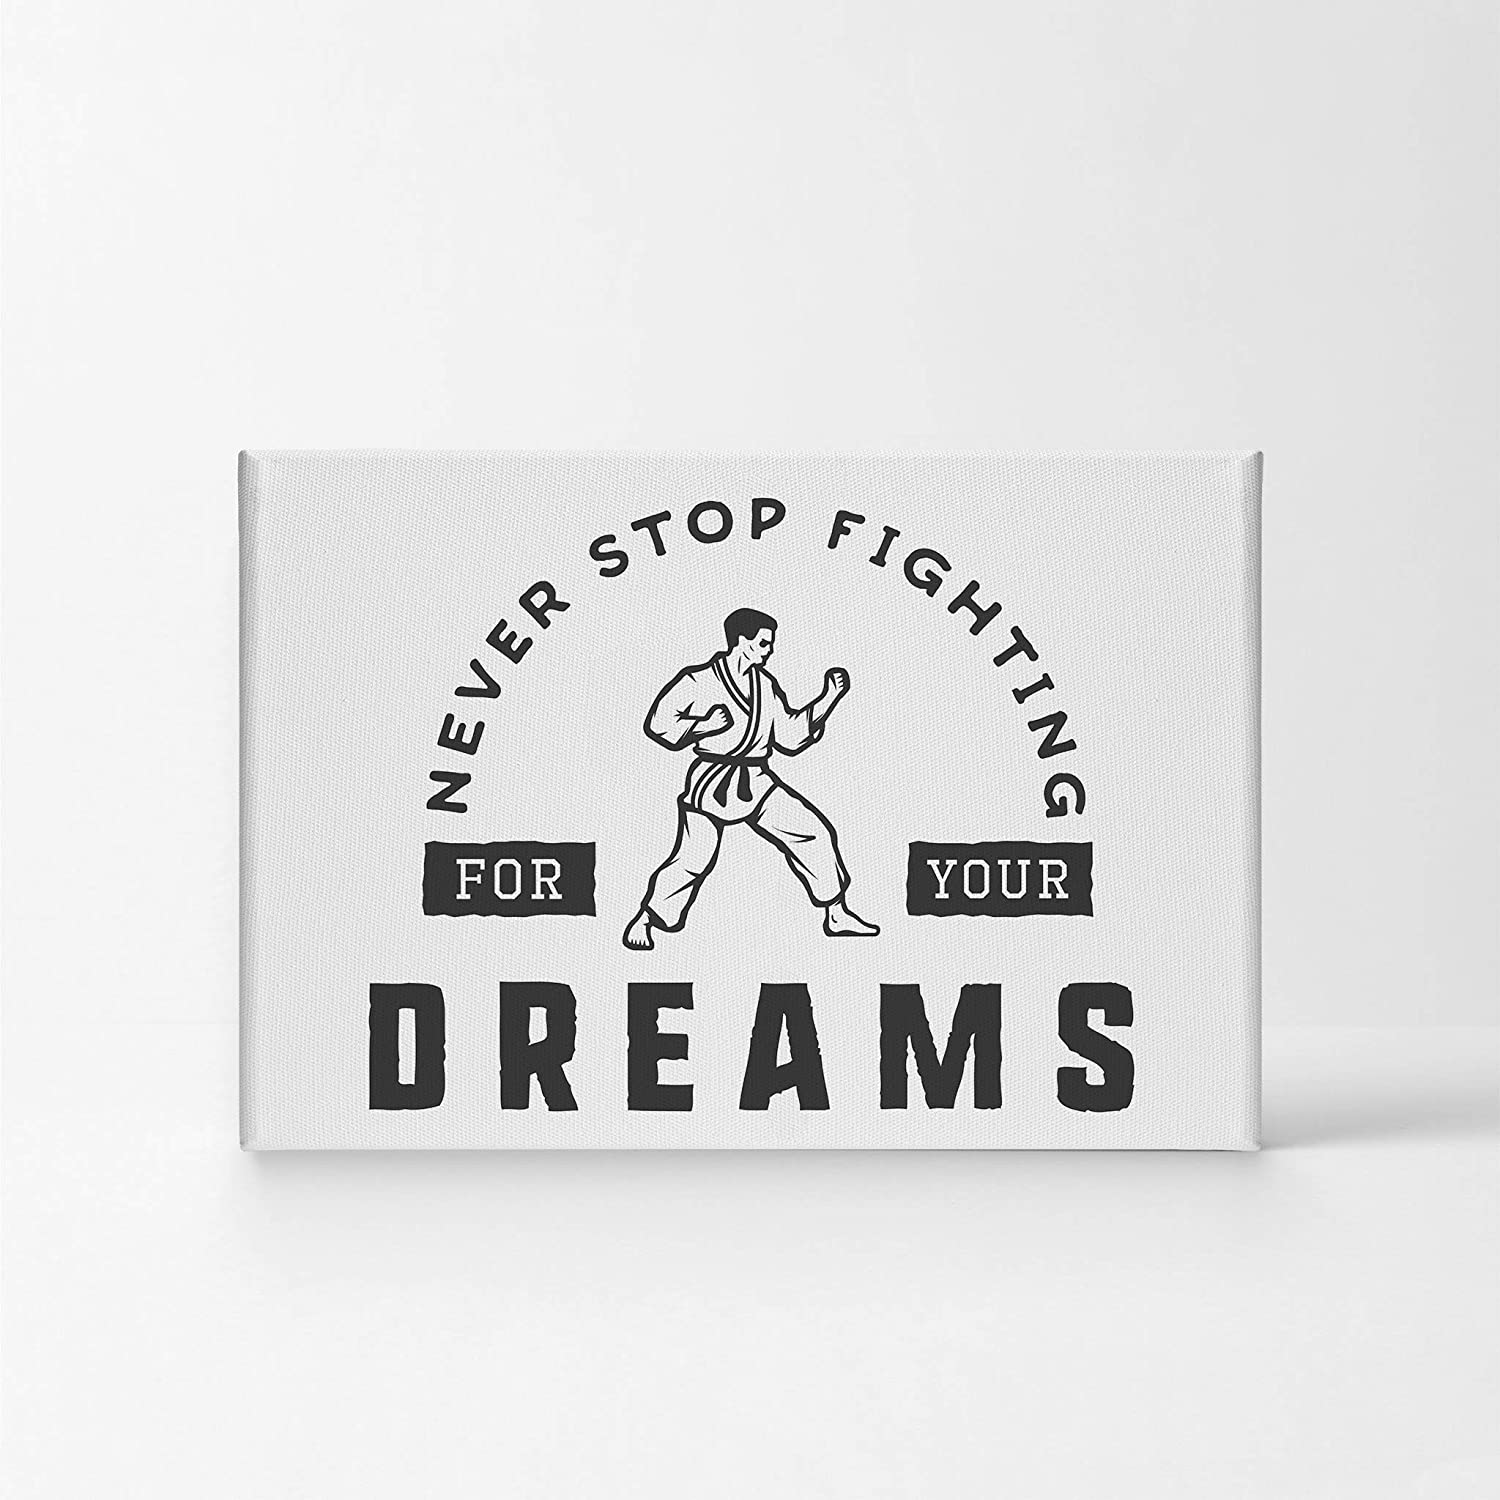 Amazon Com Smile Art Design Never Stop Fighting Quote Black And White Motivational Canvas Wall Art Inspirational Wall Art Entrepreneur Quote Print Office Living Room Decor Artwork Gift Ready To Hang 8x12 Posters